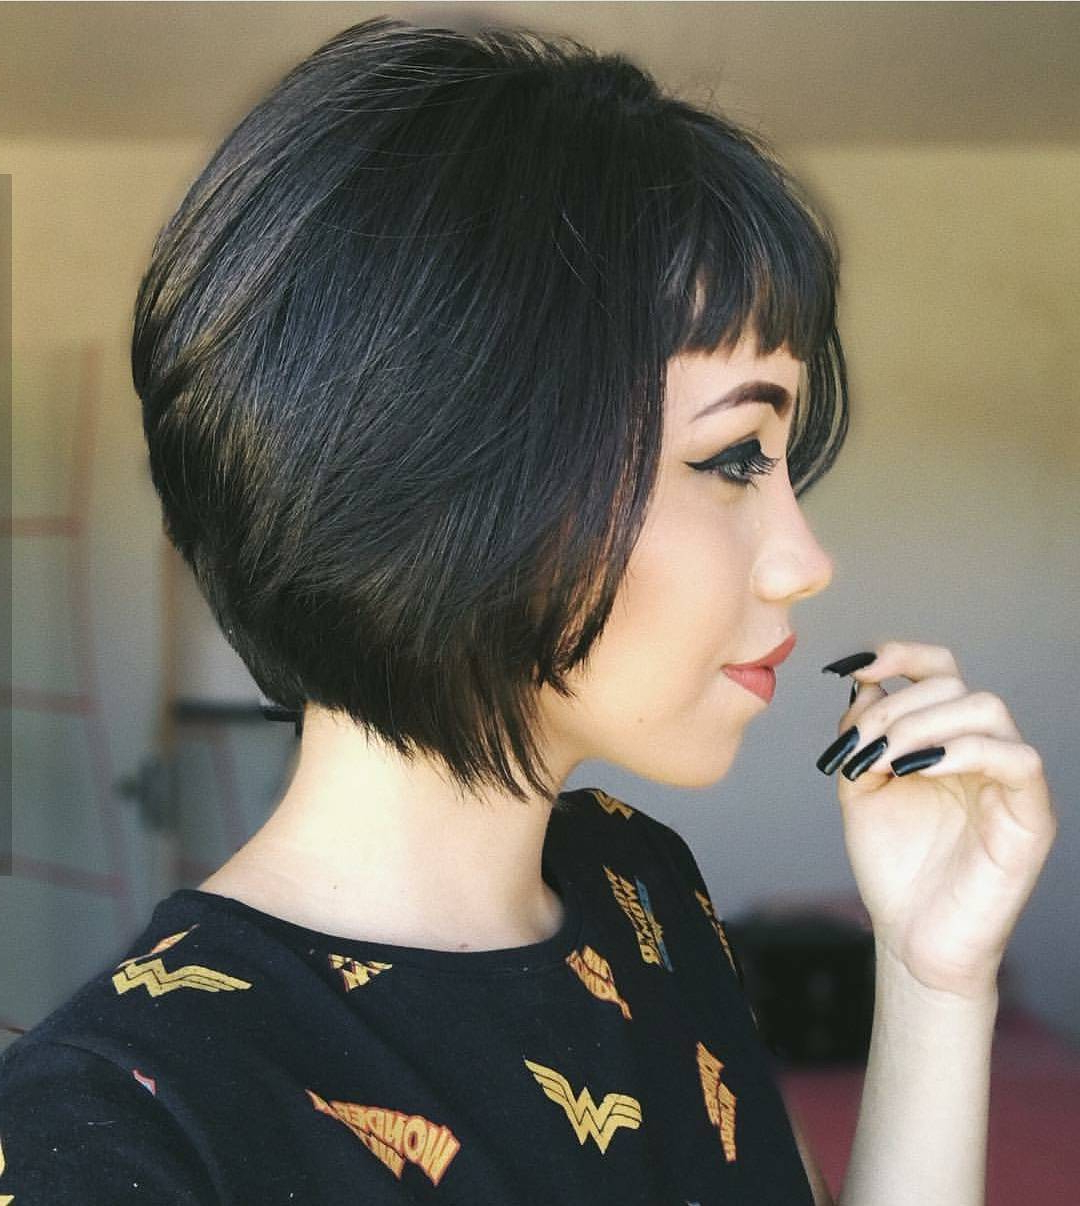 10 Chic Short Bob Haircuts That Balance Your Face Shape! Within Chic Short Bob Haircuts With Bangs (View 5 of 20)